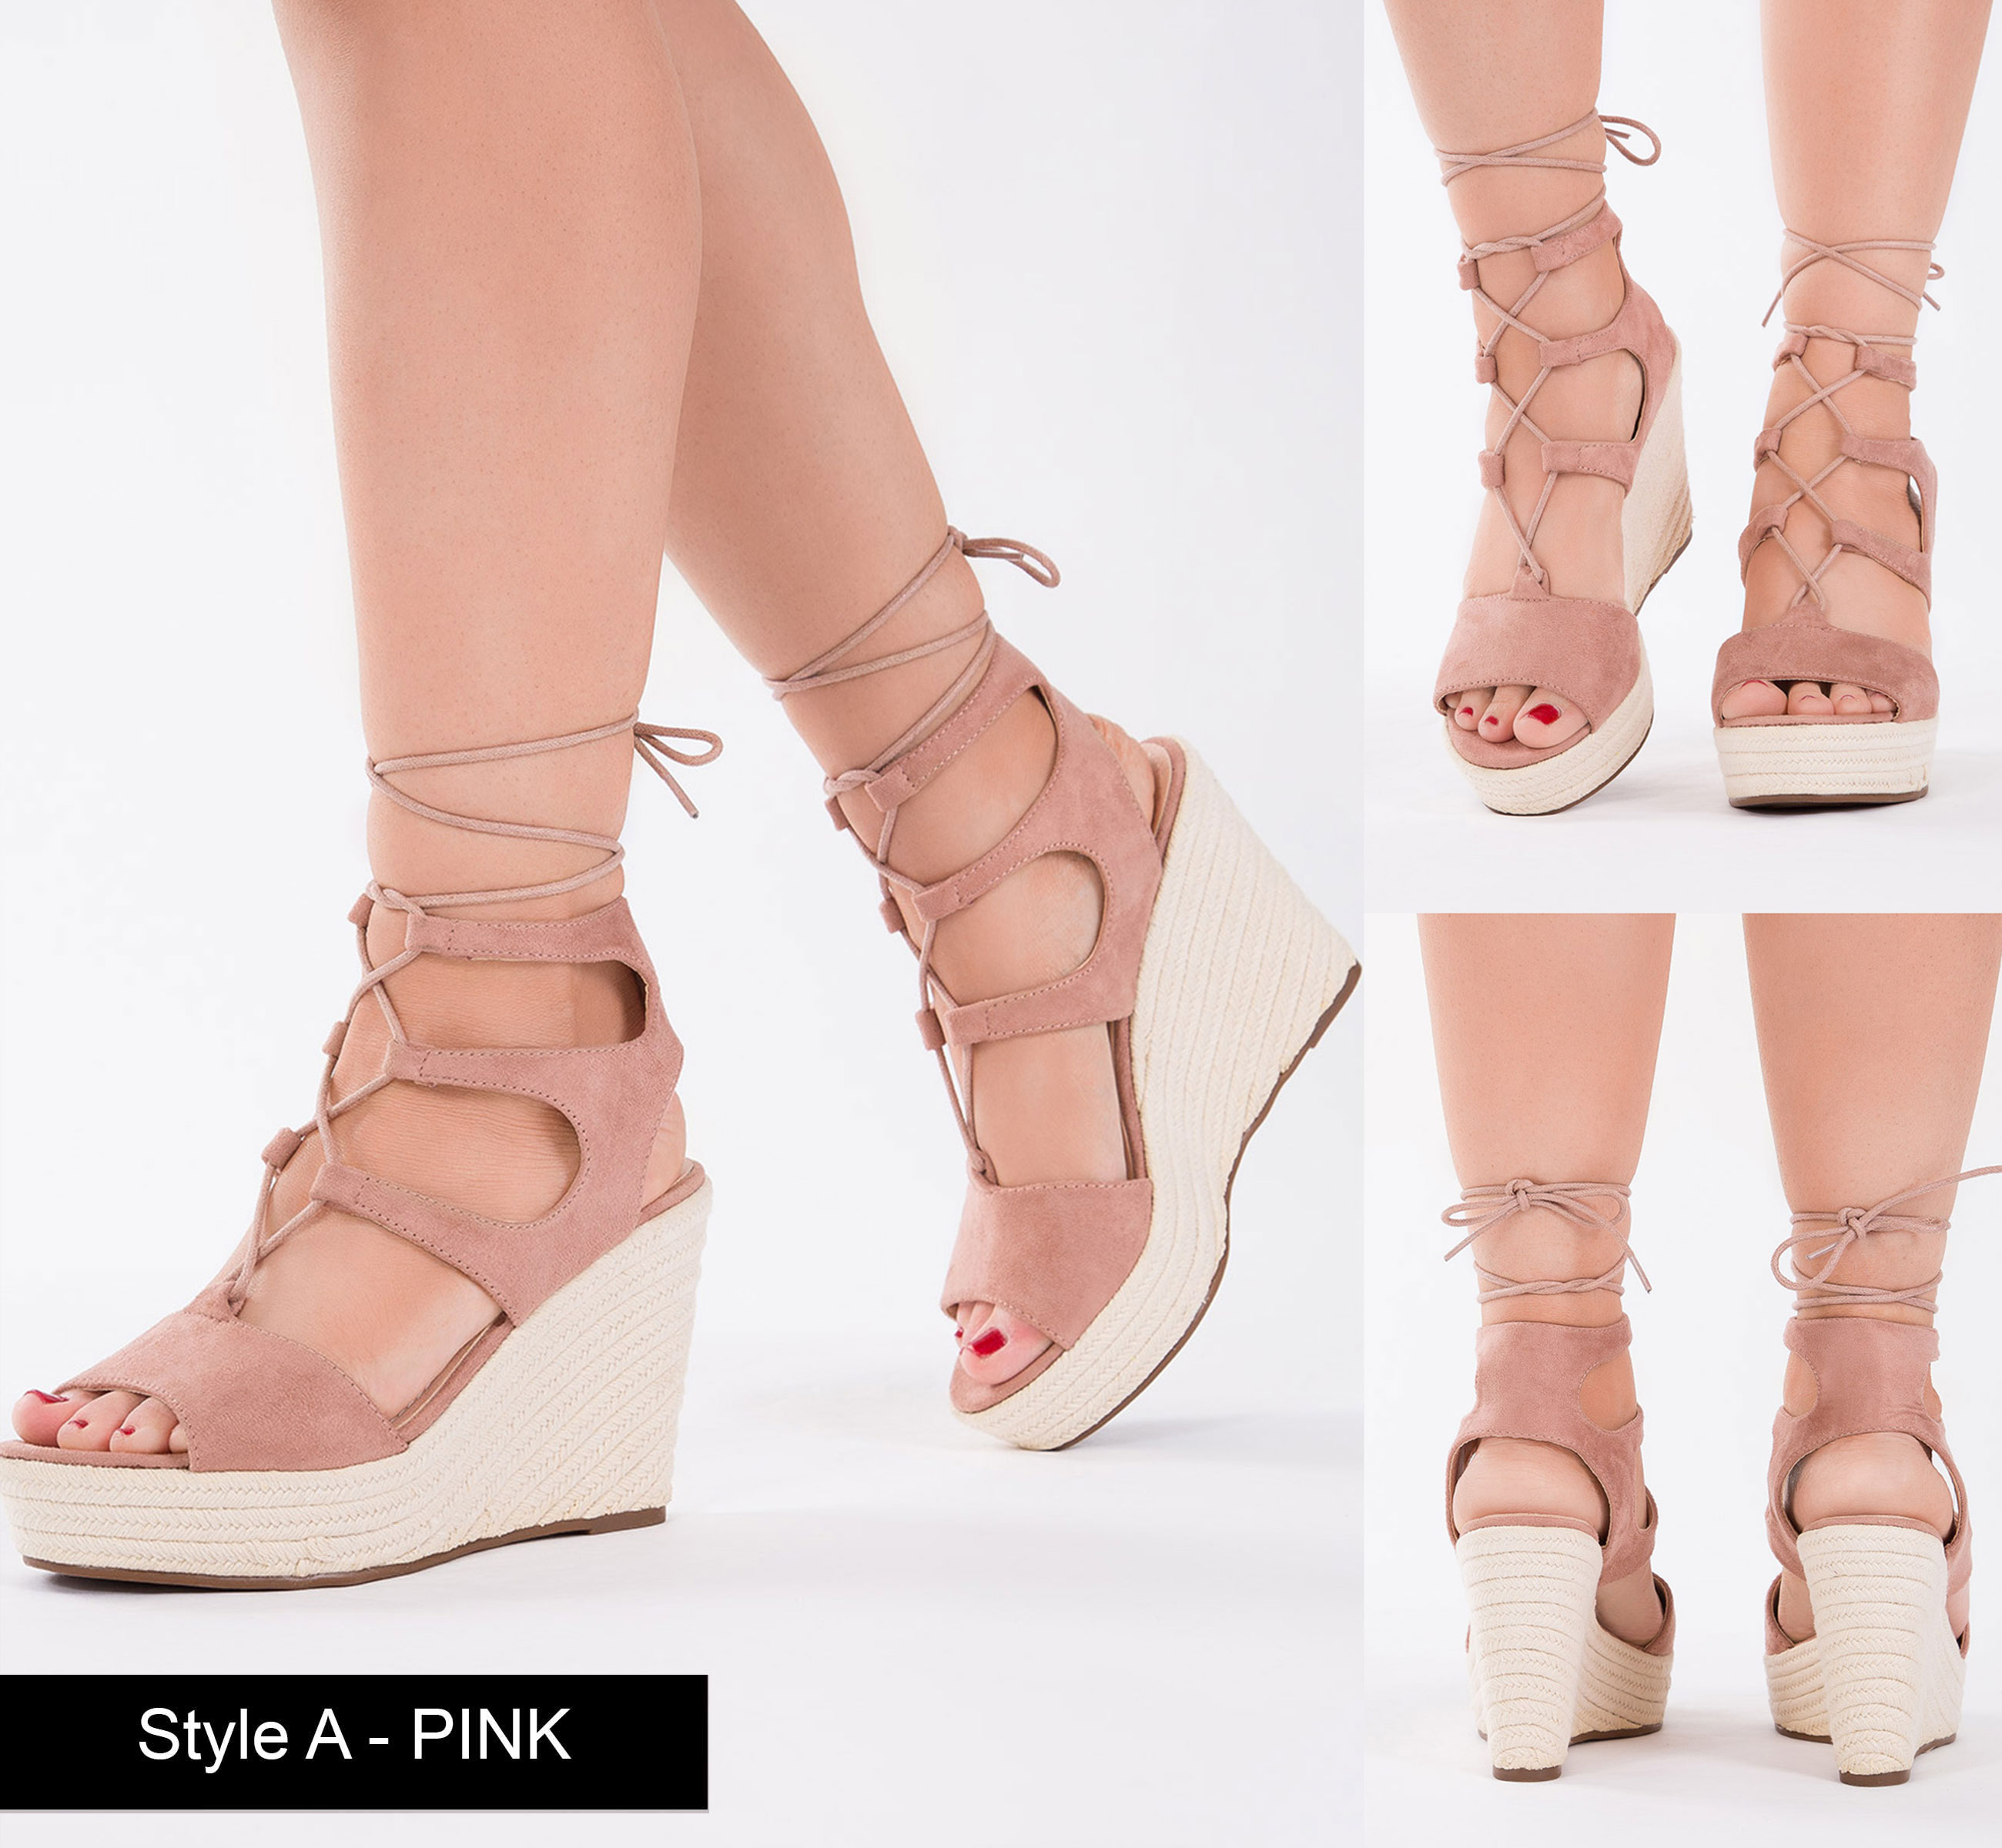 WOMENS-PLATFORM-WEDGES-LADIES-STRAPPY-HEEL-ANKLE-STRAP-LACE-UP-SANDAL-SIZE-3-8